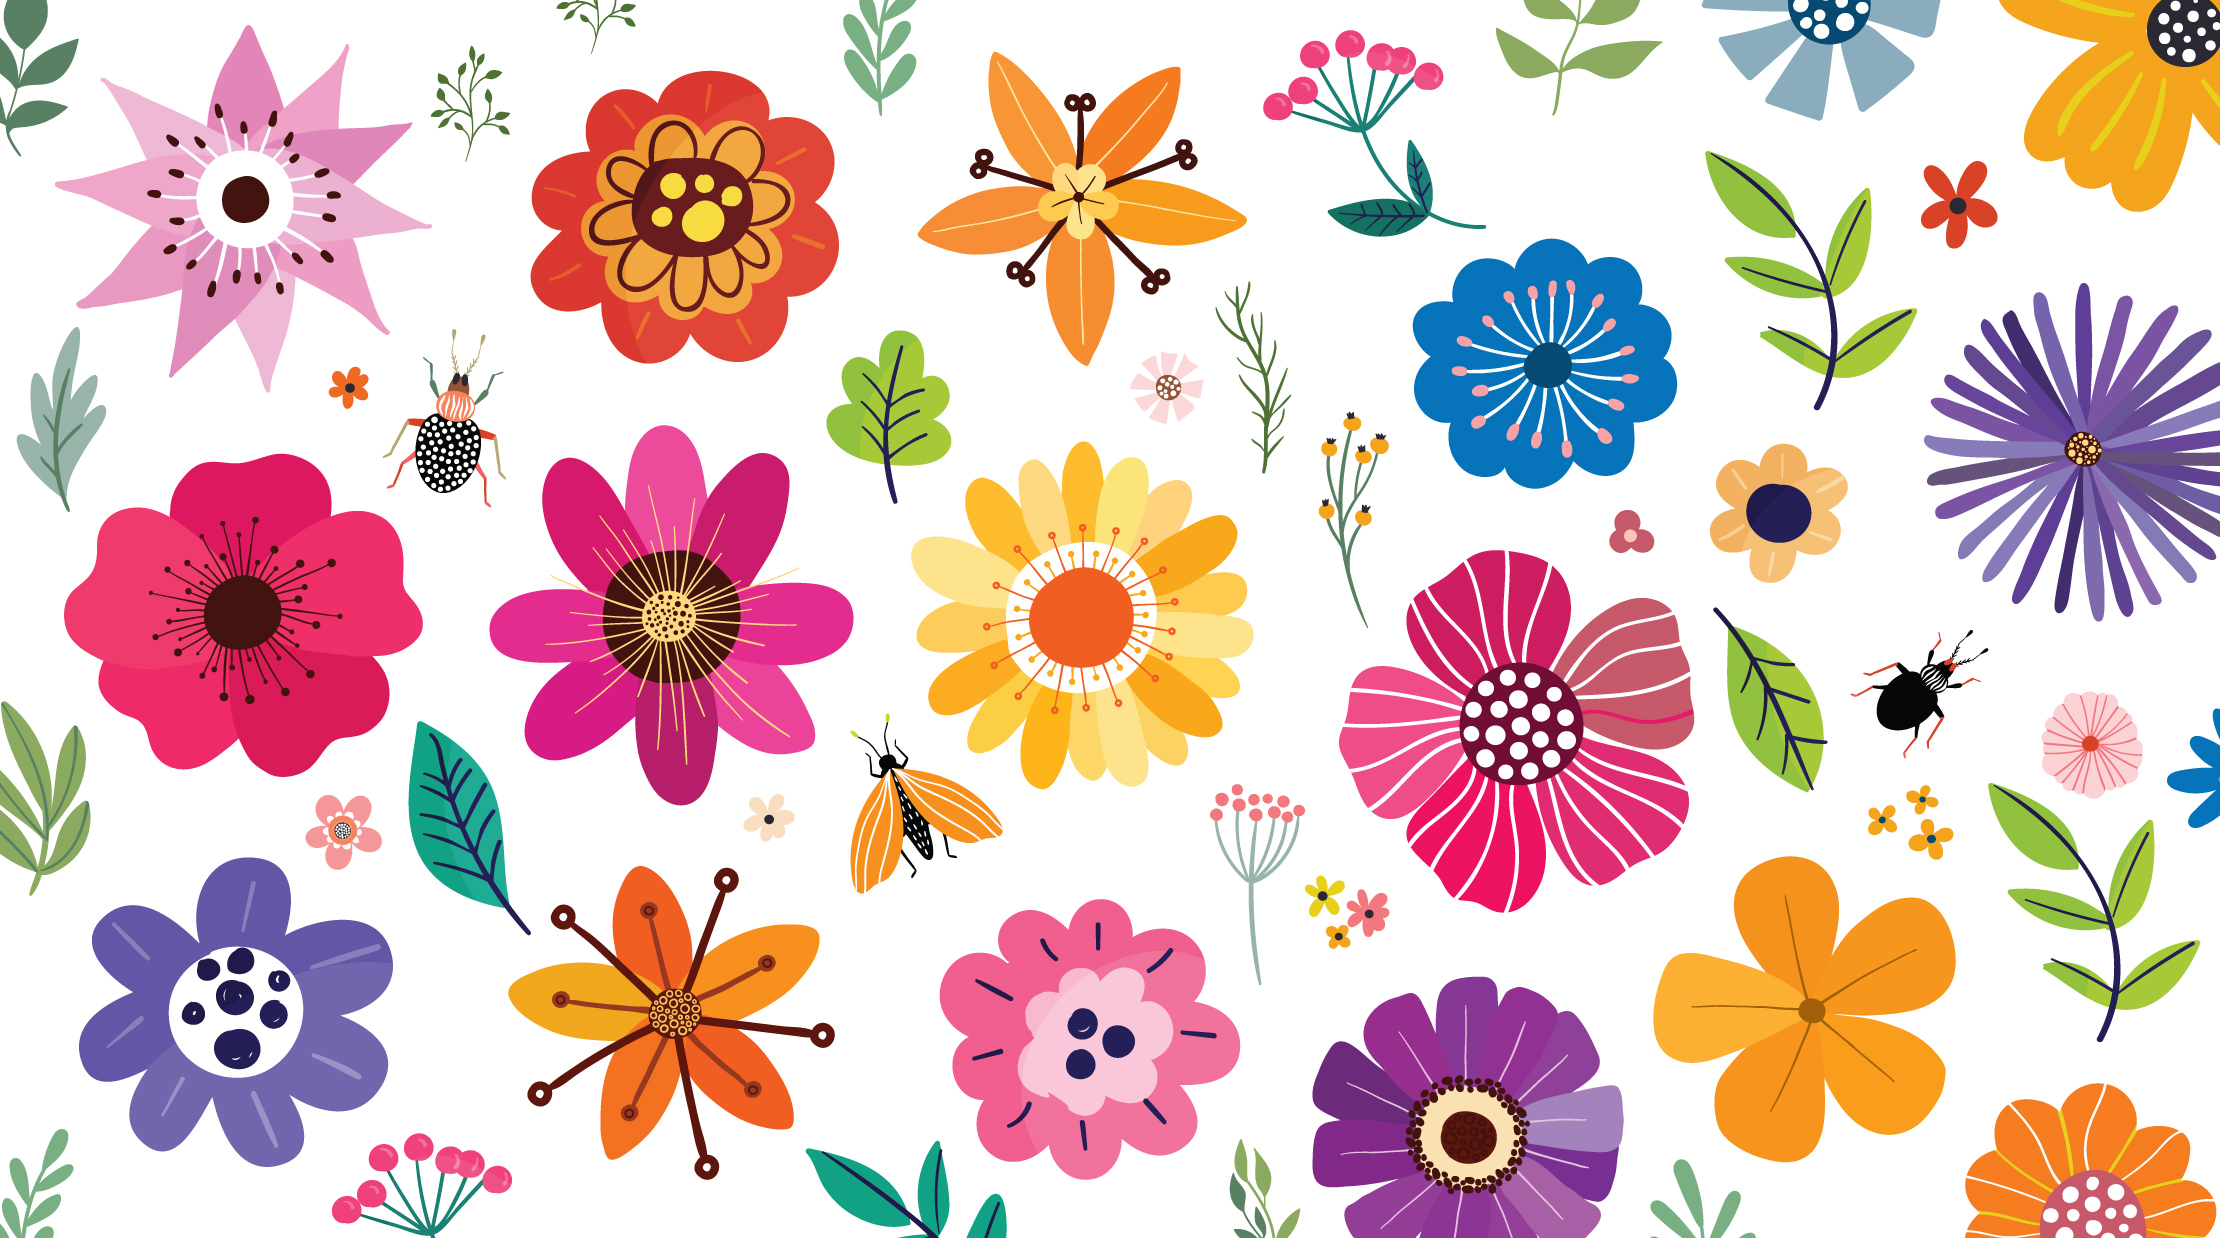 A collection of flowers, leafs, and insects.